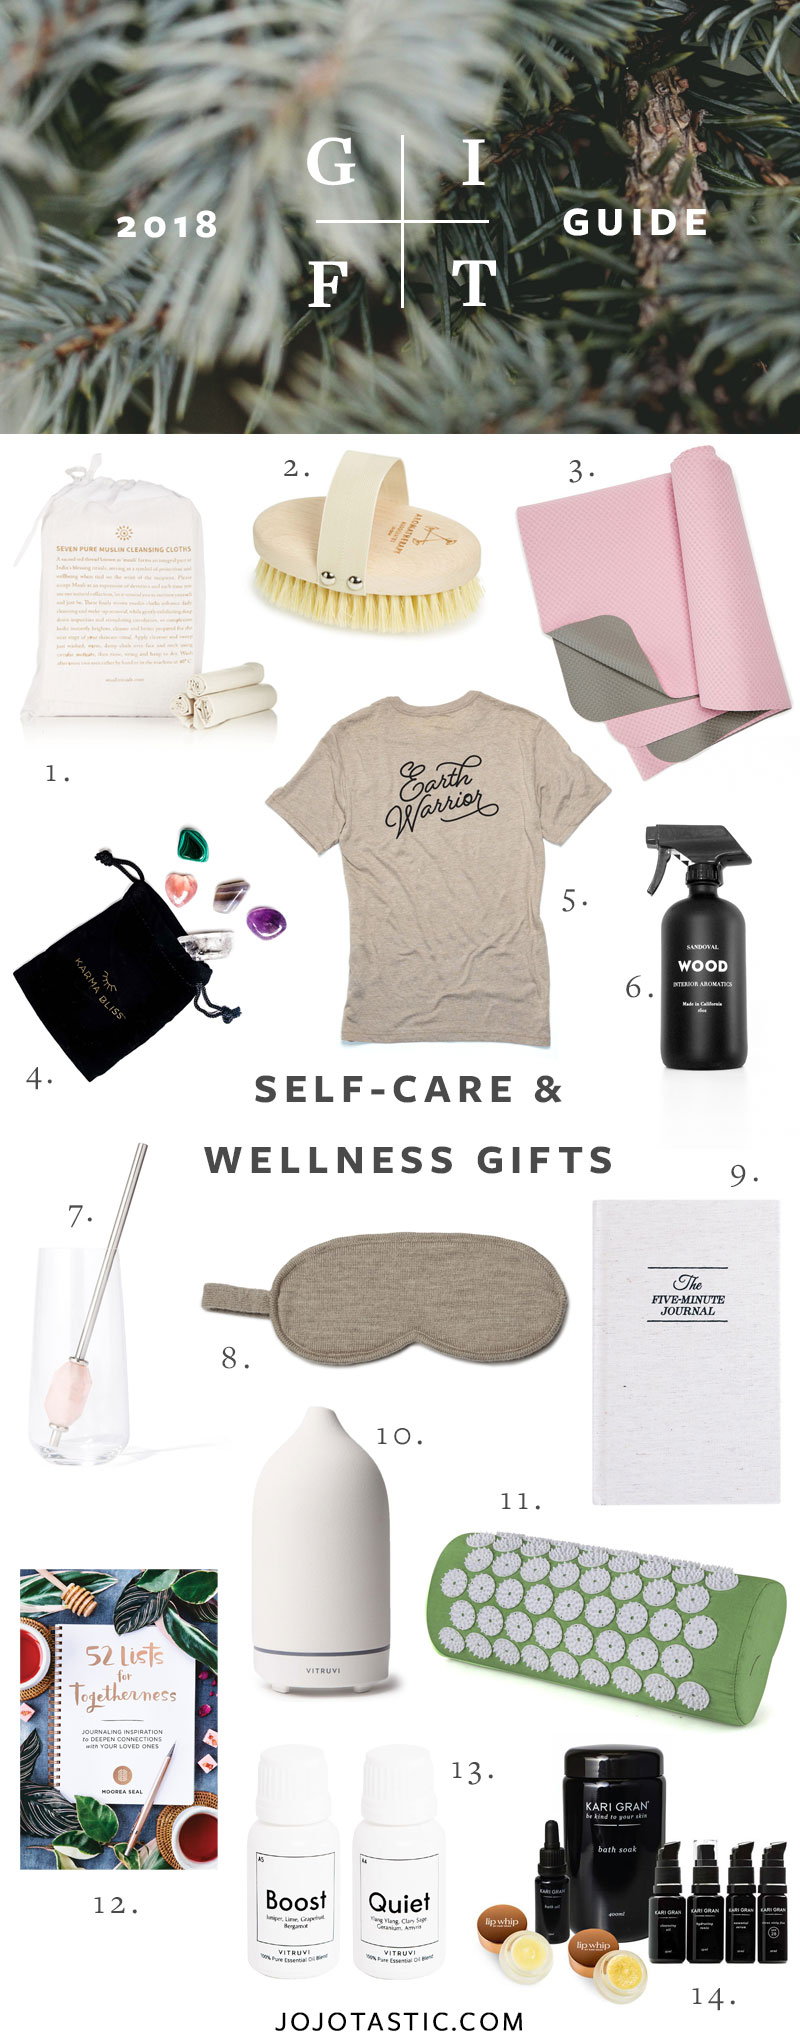 Self-Care and Wellness Gift Ideas, Gift Guide for Christmas & Holidays 2018 via jojotastic.com #giftguide #giftidea #giftgiving #gifts #presents #christmaspresents #christmasgiftideas #christmasgift #selfcare #wellness